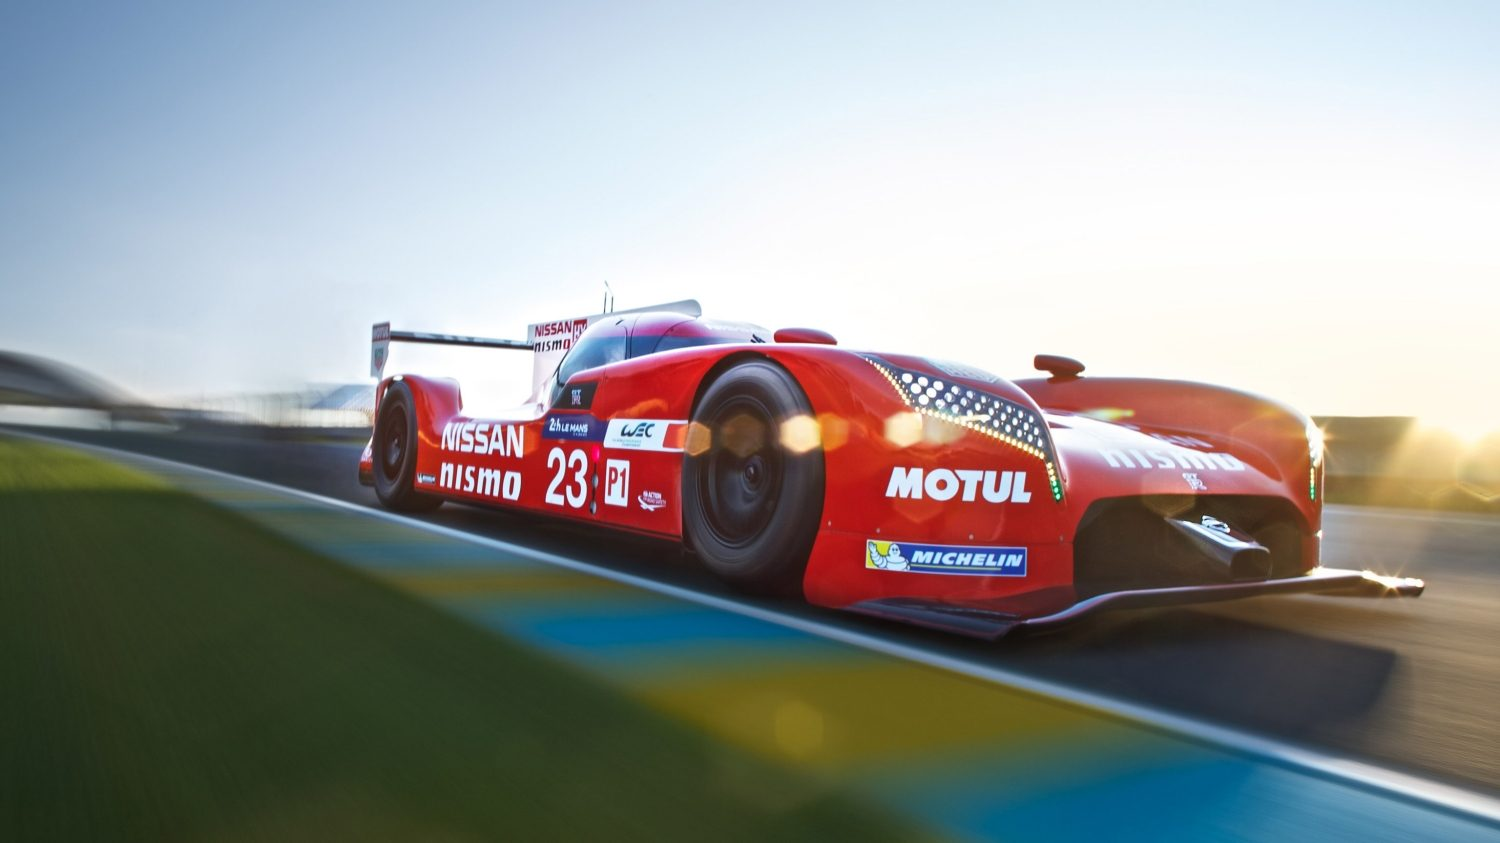 GT-R LM NISMO. Gallery low 3/4 front on the track.